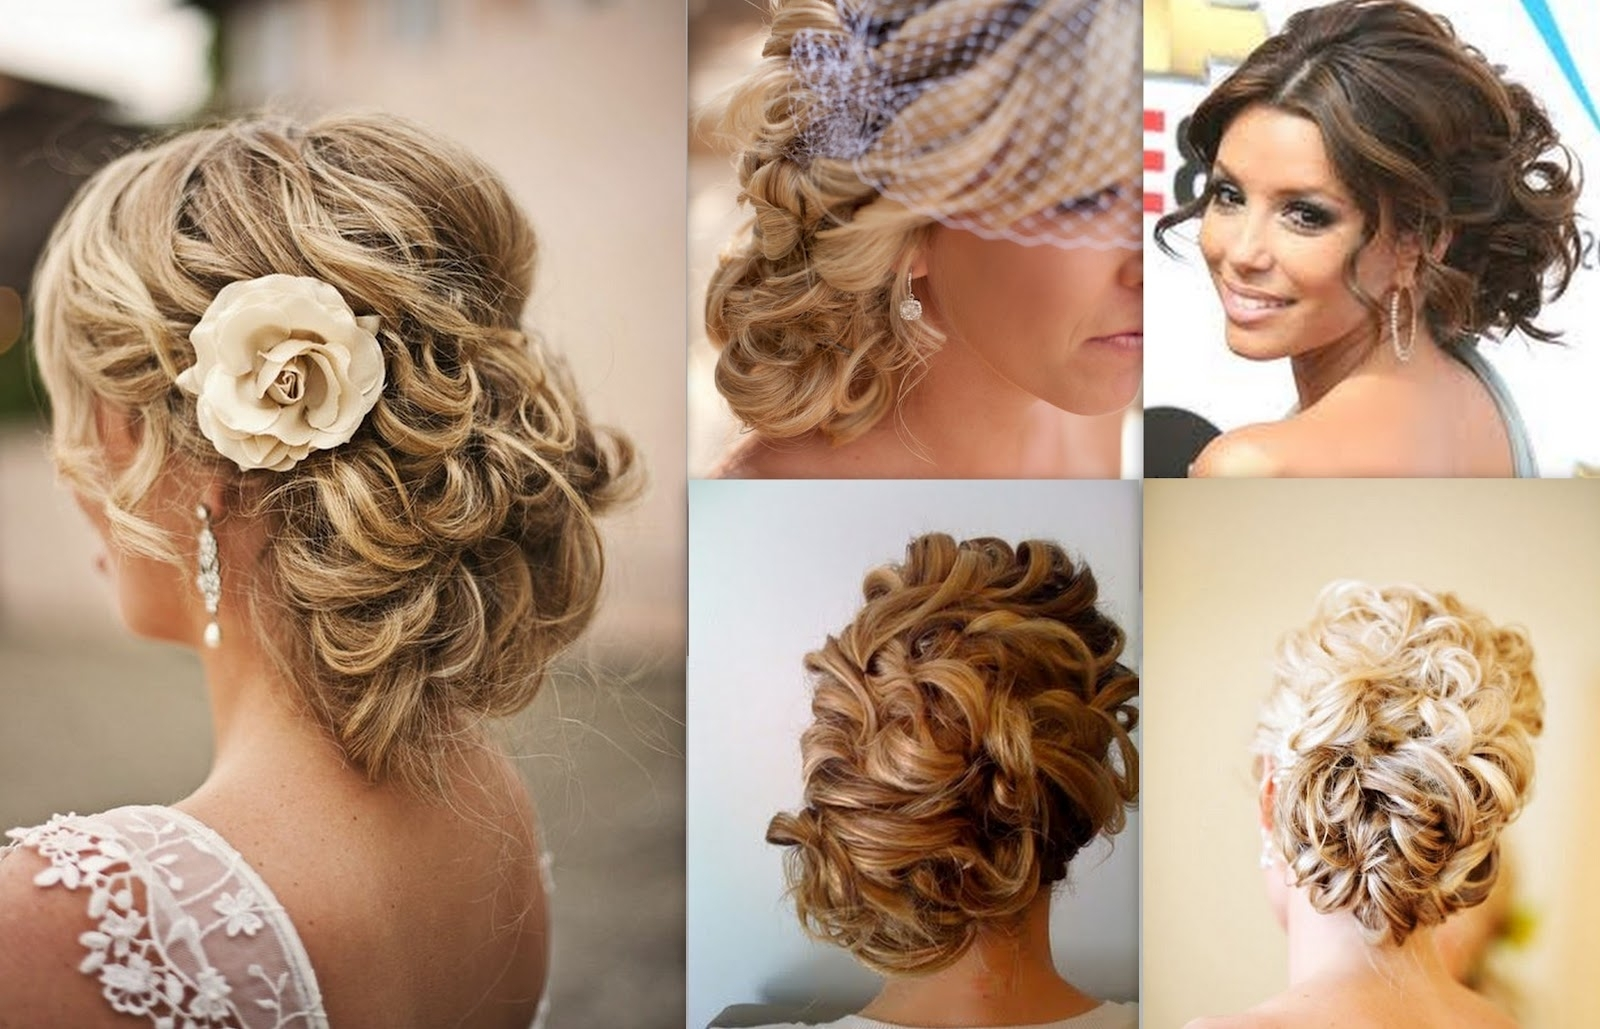 Best Wedding Hairs (View 13 of 15)